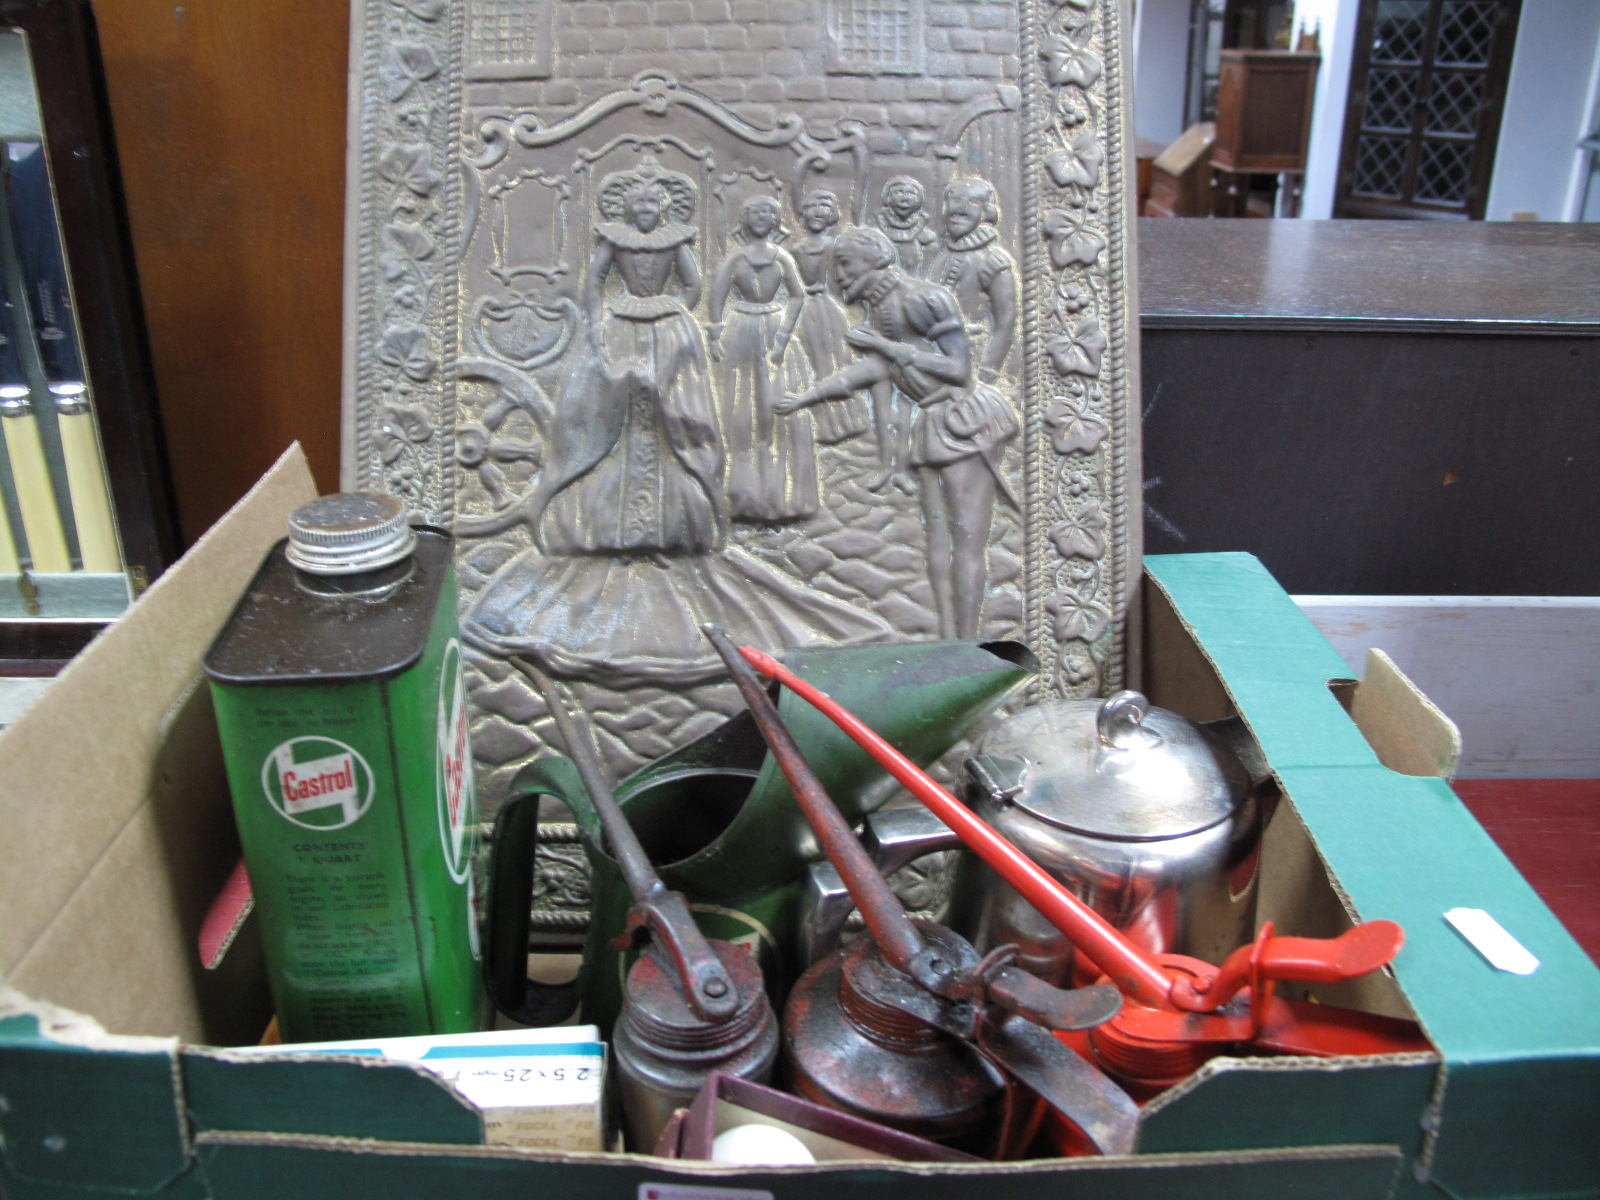 Lot 61 - Castrol and Other Oil Cans, plated teapot, brass plaque, small billiard balls, opera glasses, impact